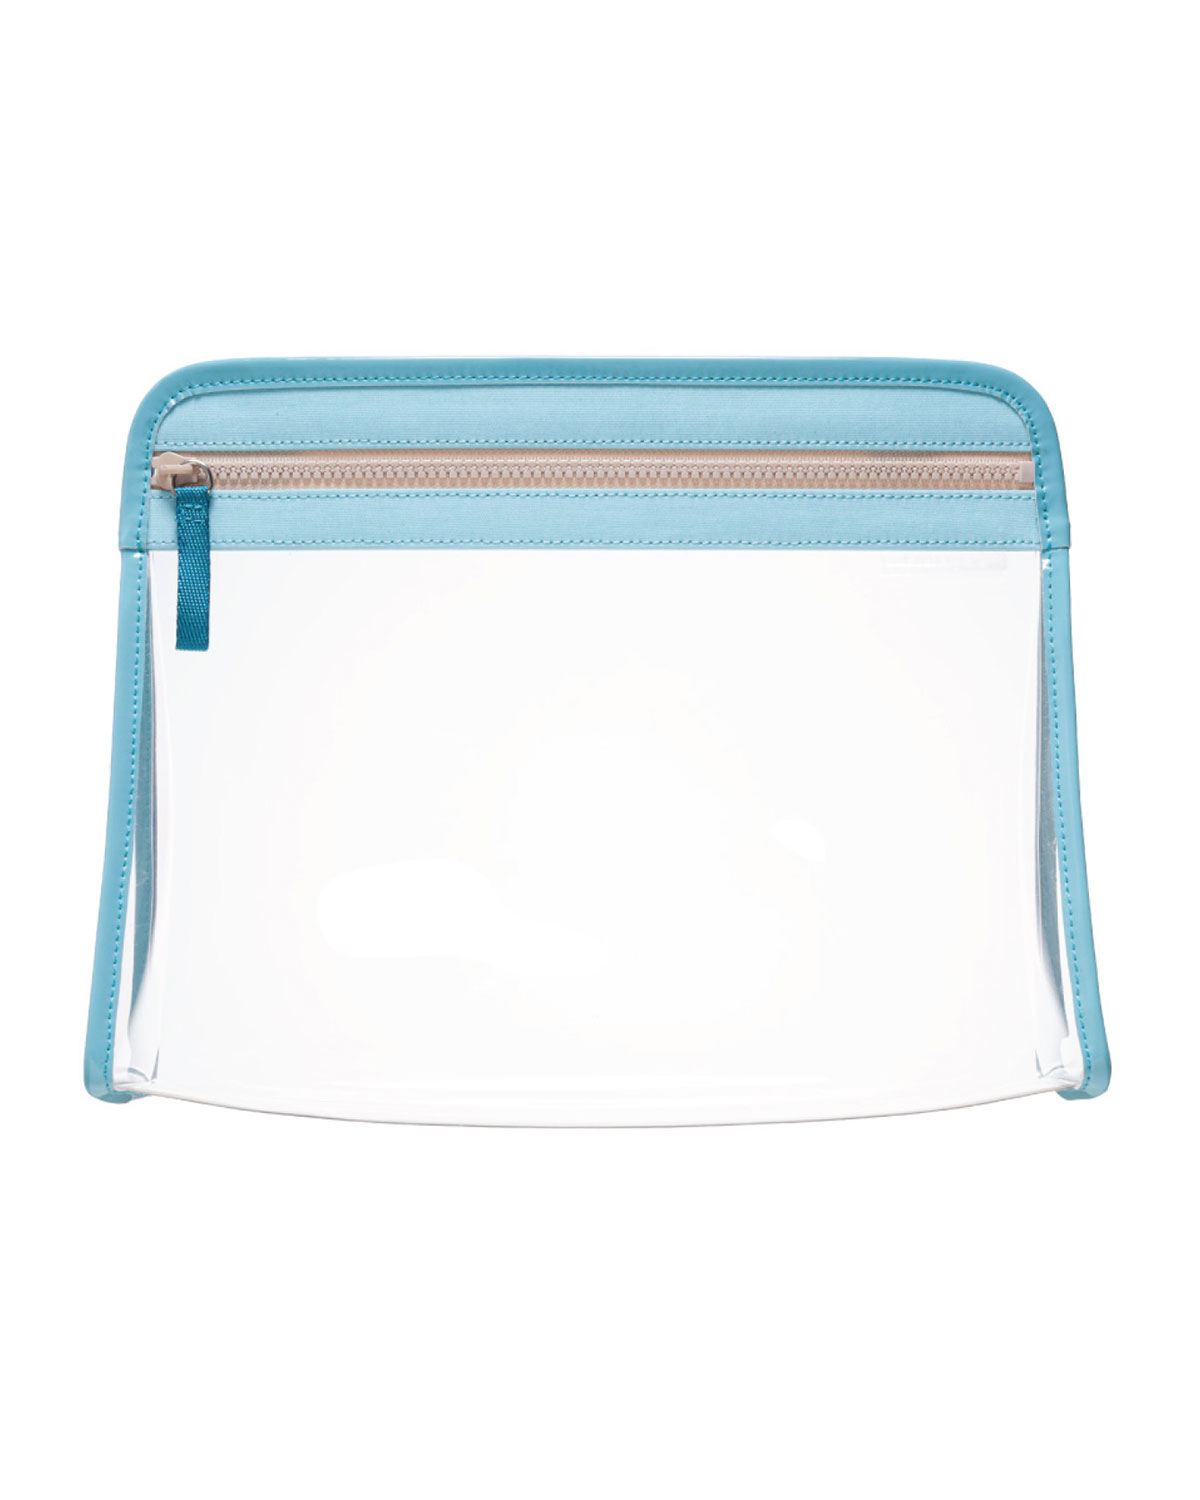 Clarity Pouch